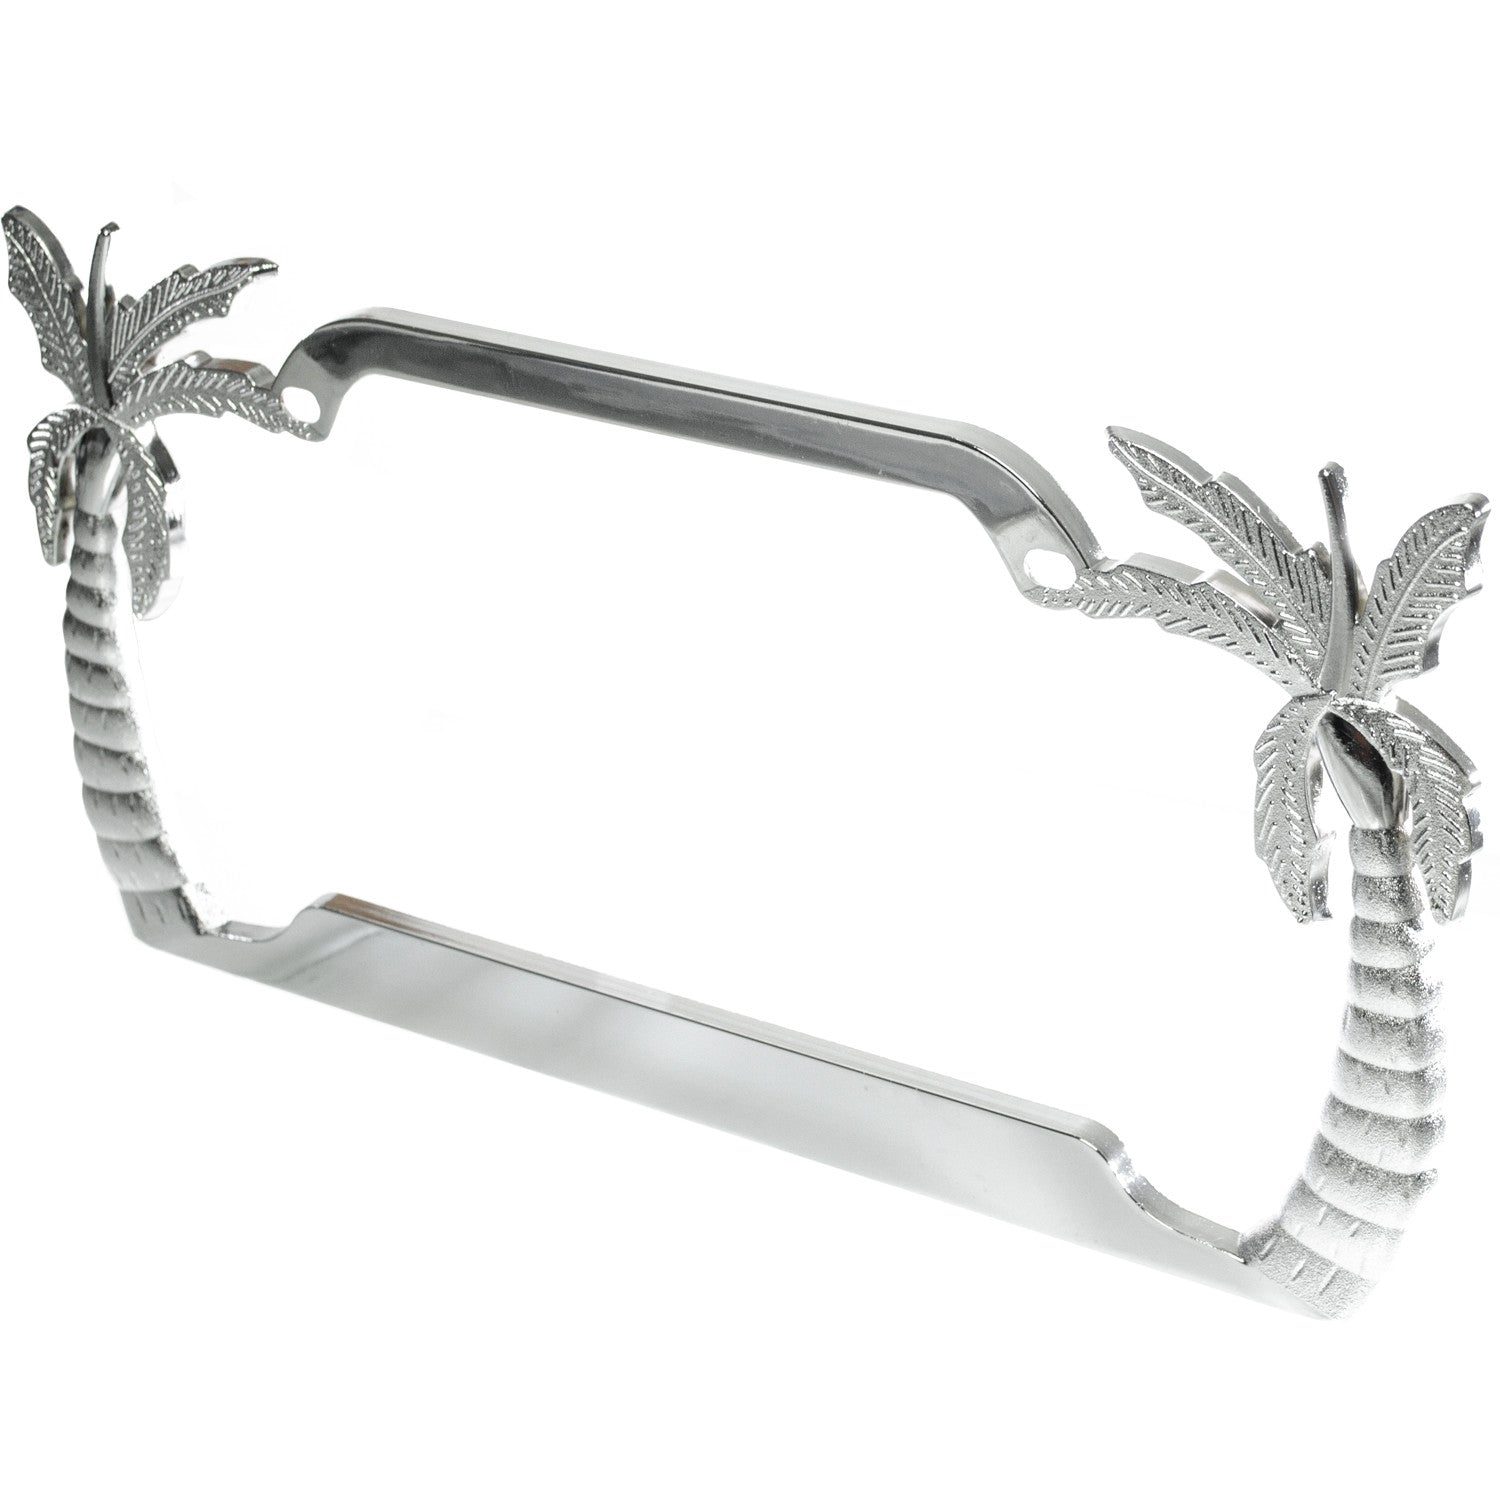 majic license plate frame chrome metal palm tree